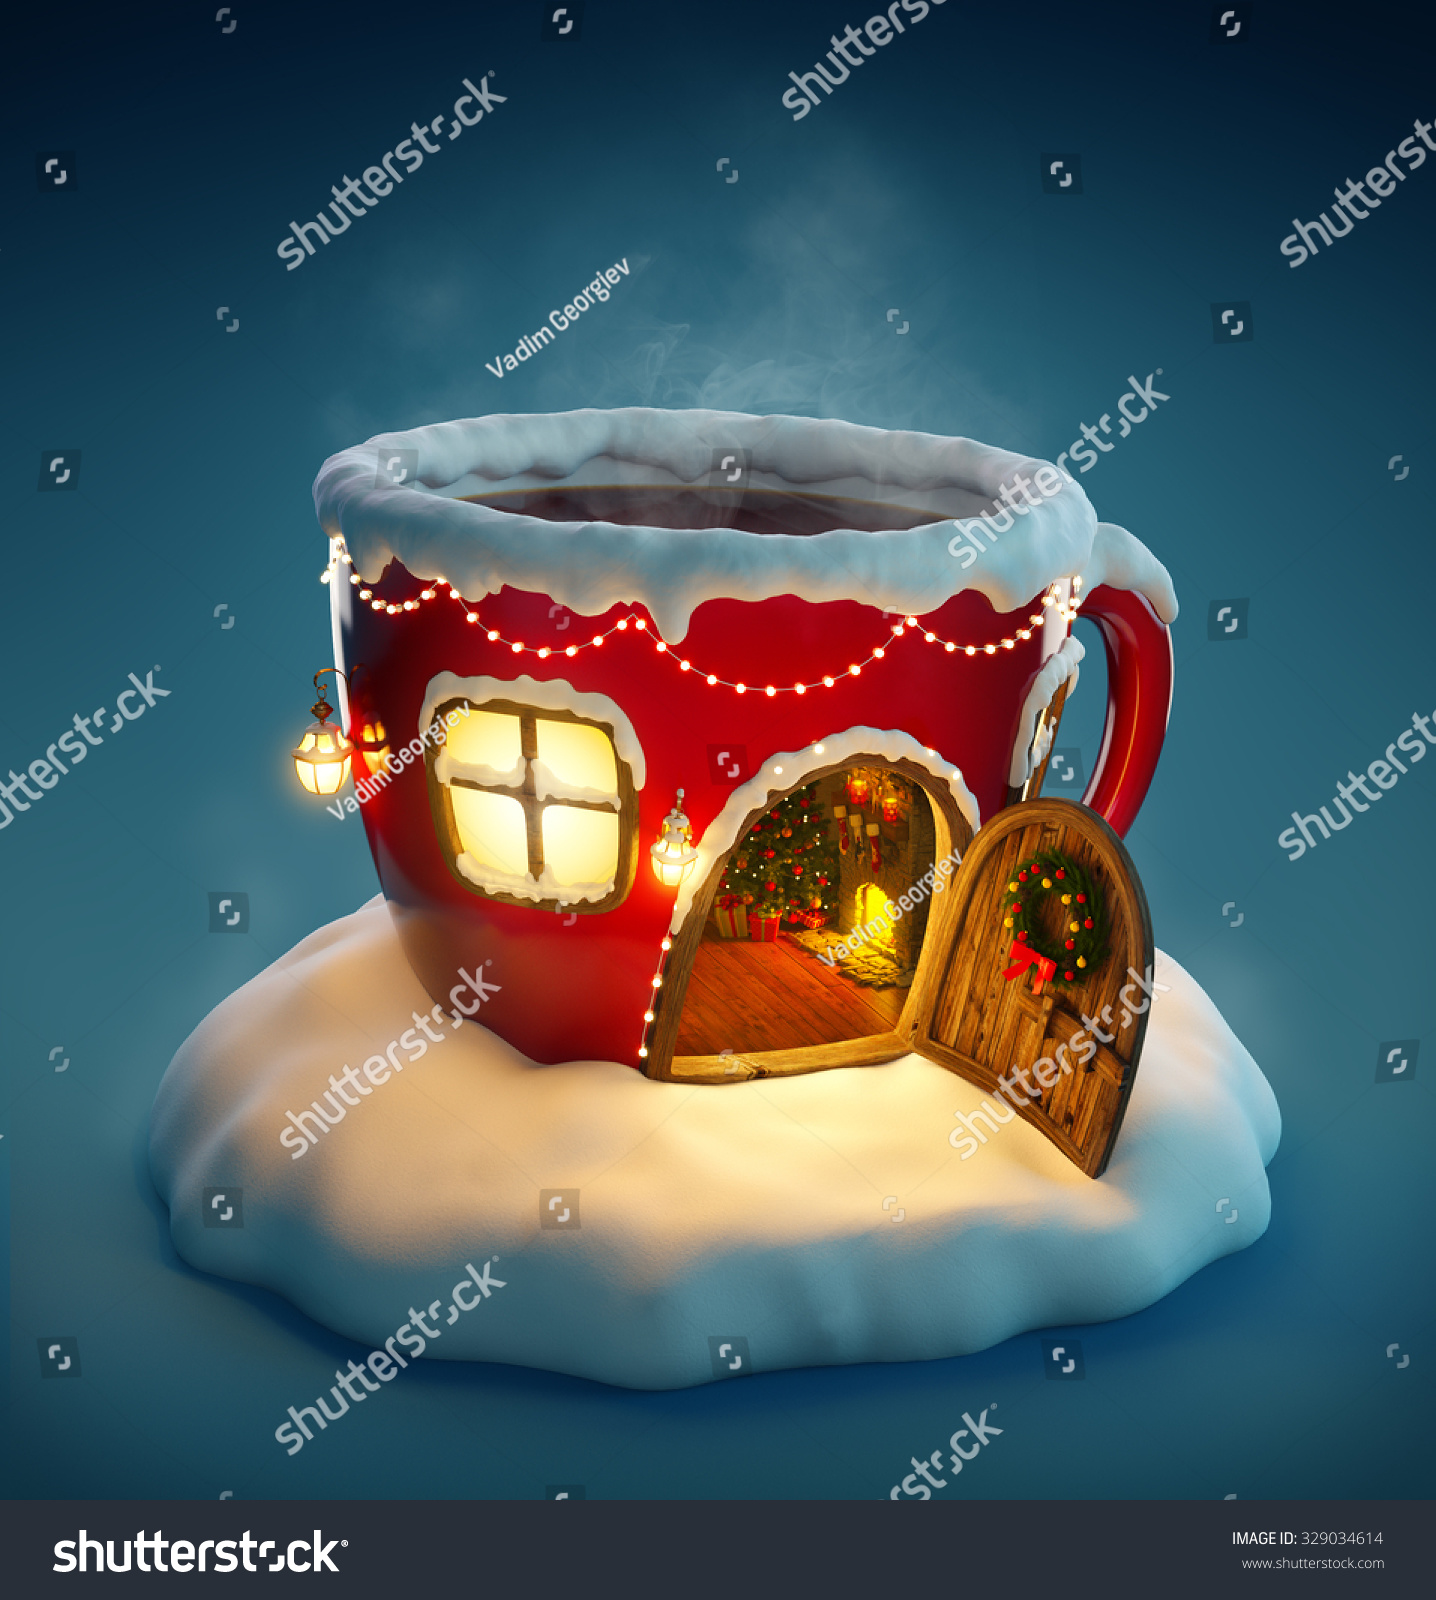 Amazing fairy house decorated at christmas in shape of tea cup with opened door and fireplace inside Unusual christmas illustration